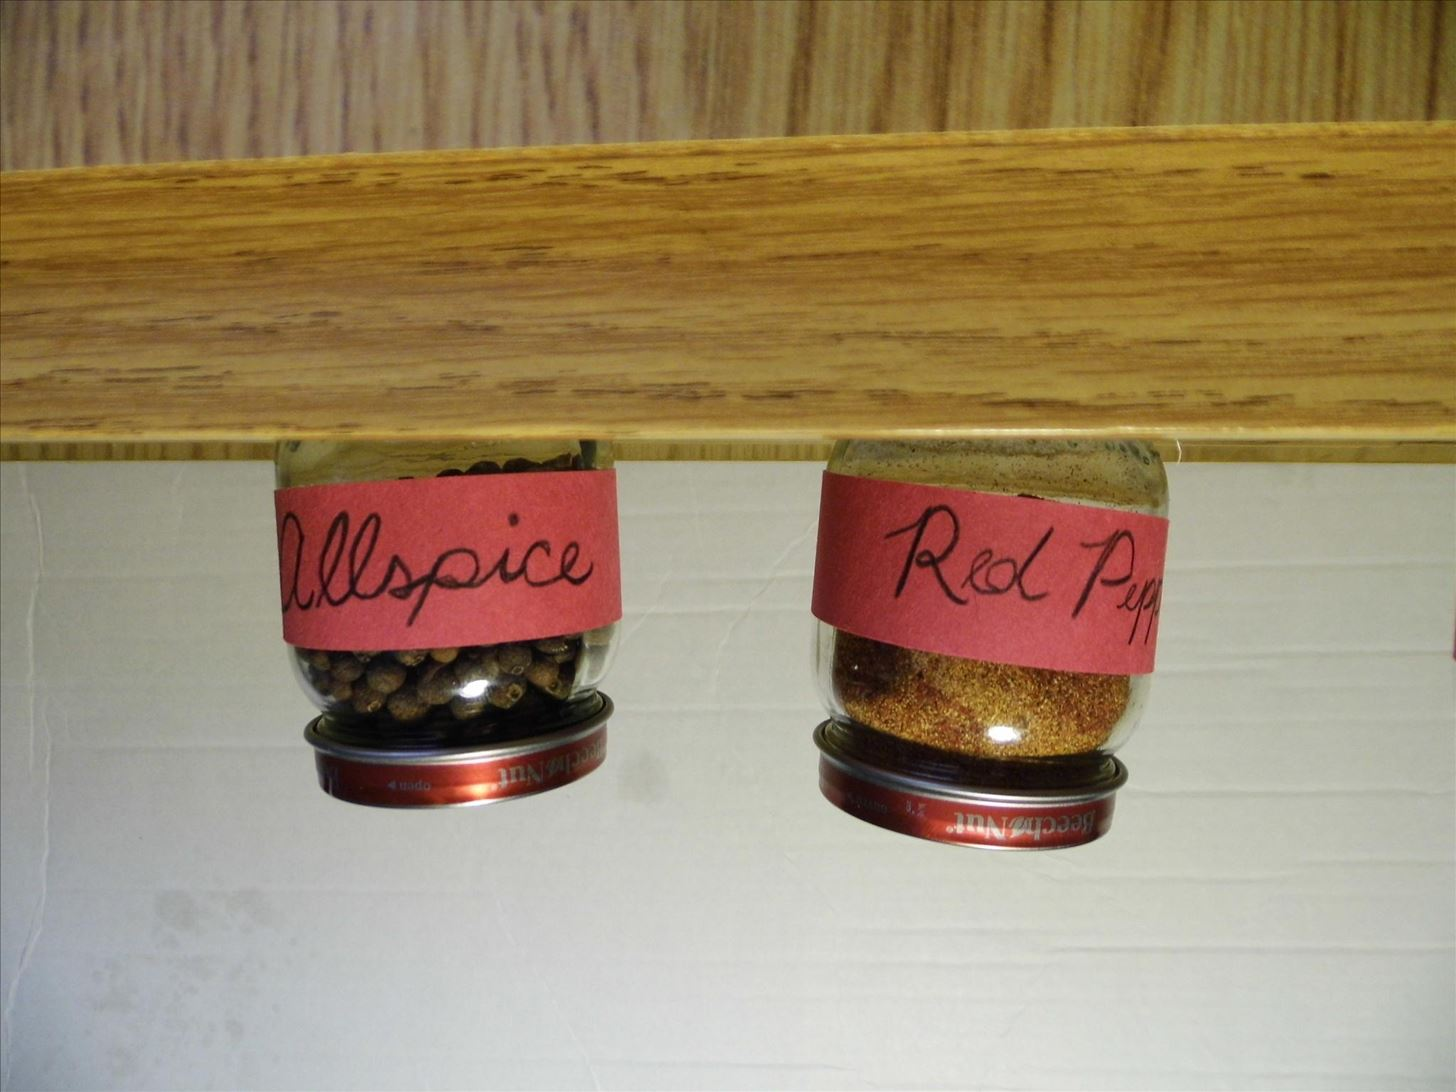 Spice Up Your Kitchen with This DIY Magnetic Steel Rule Spice Rack